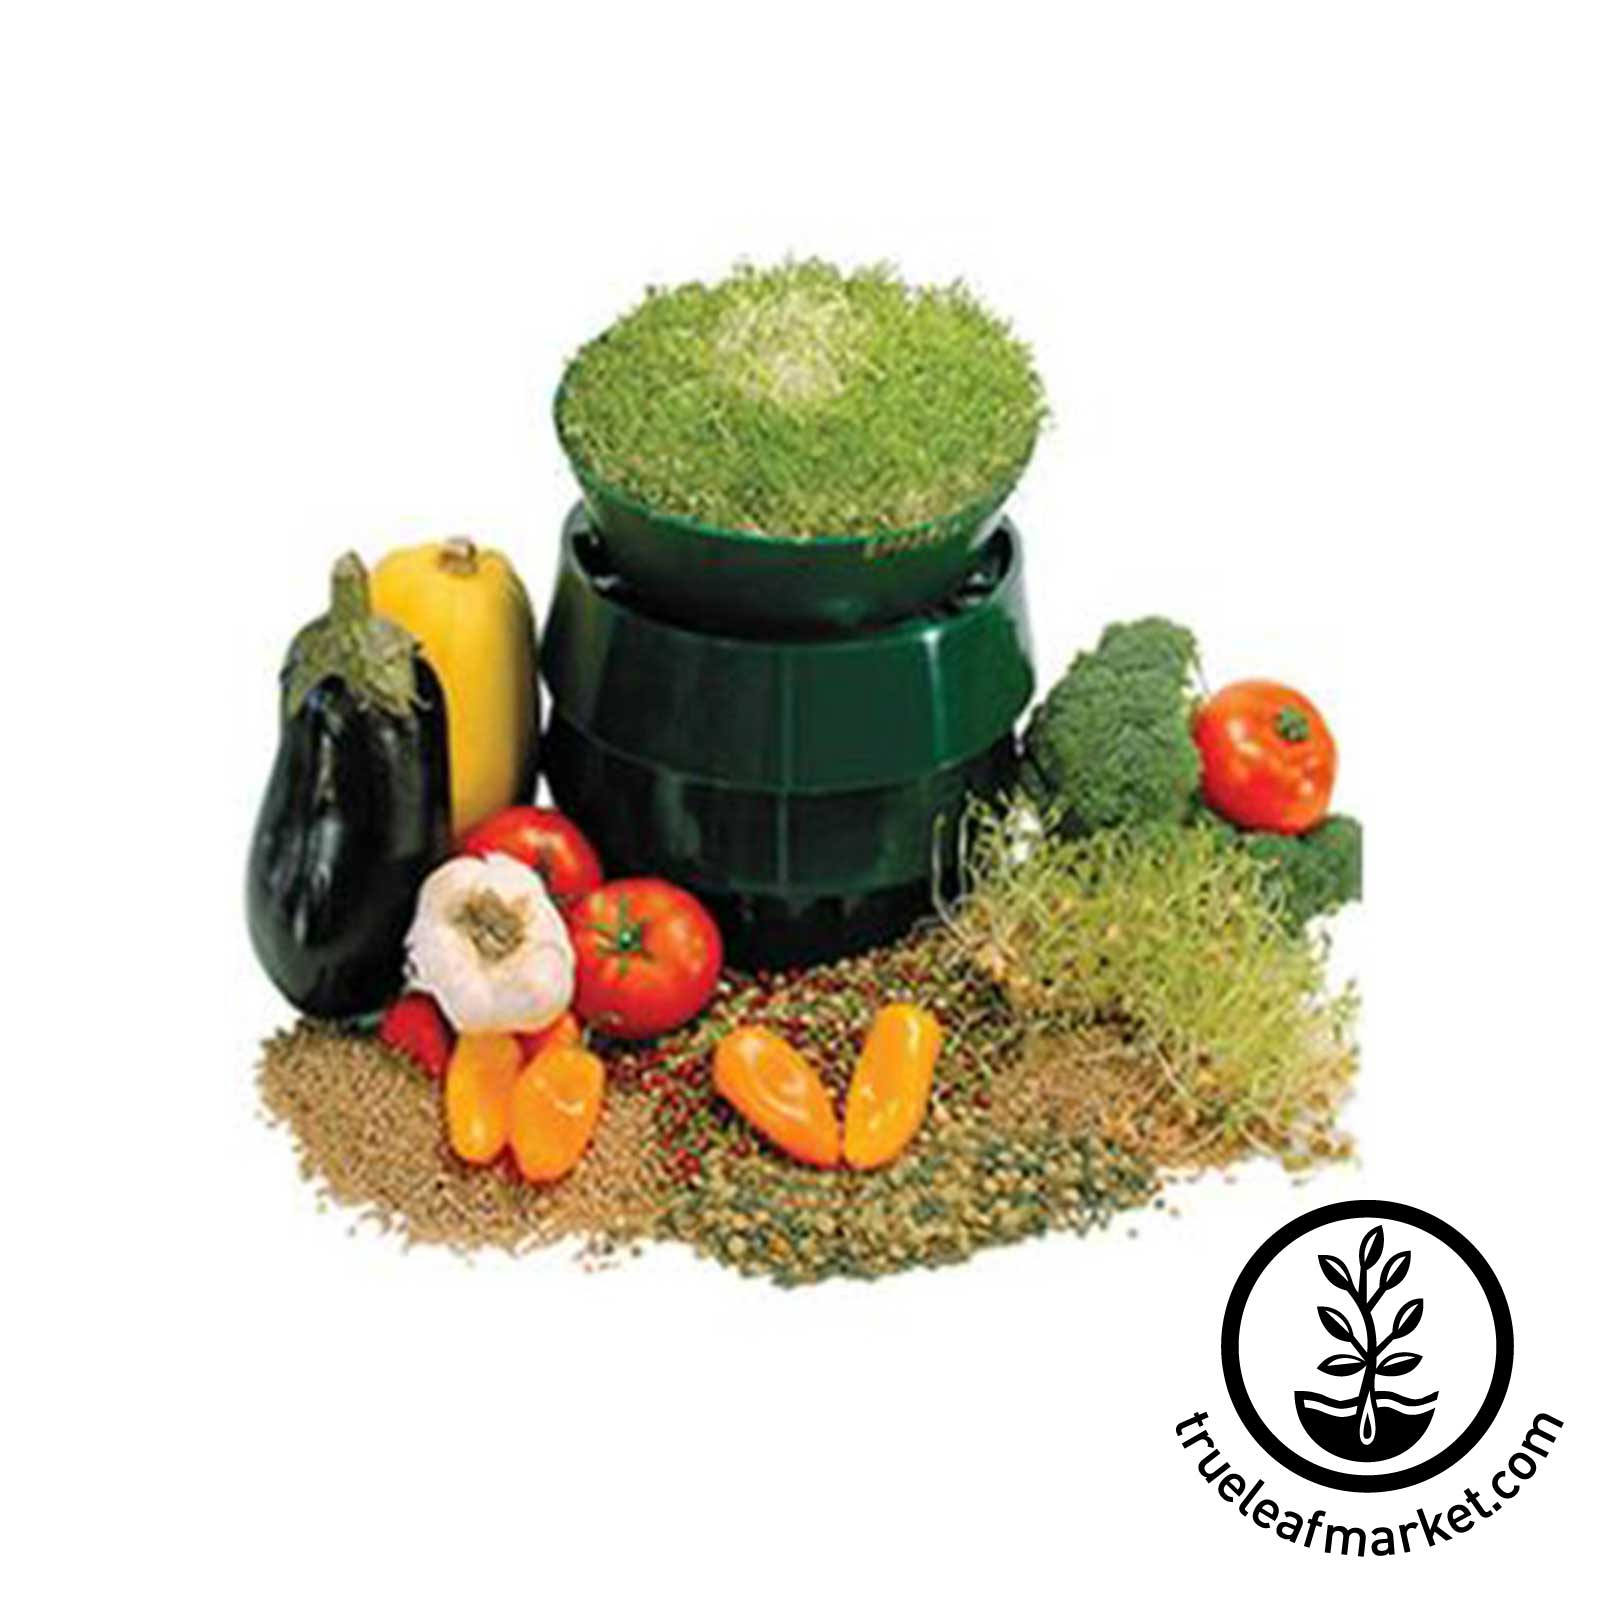 Sprout Garden Tray Sprouter In Use